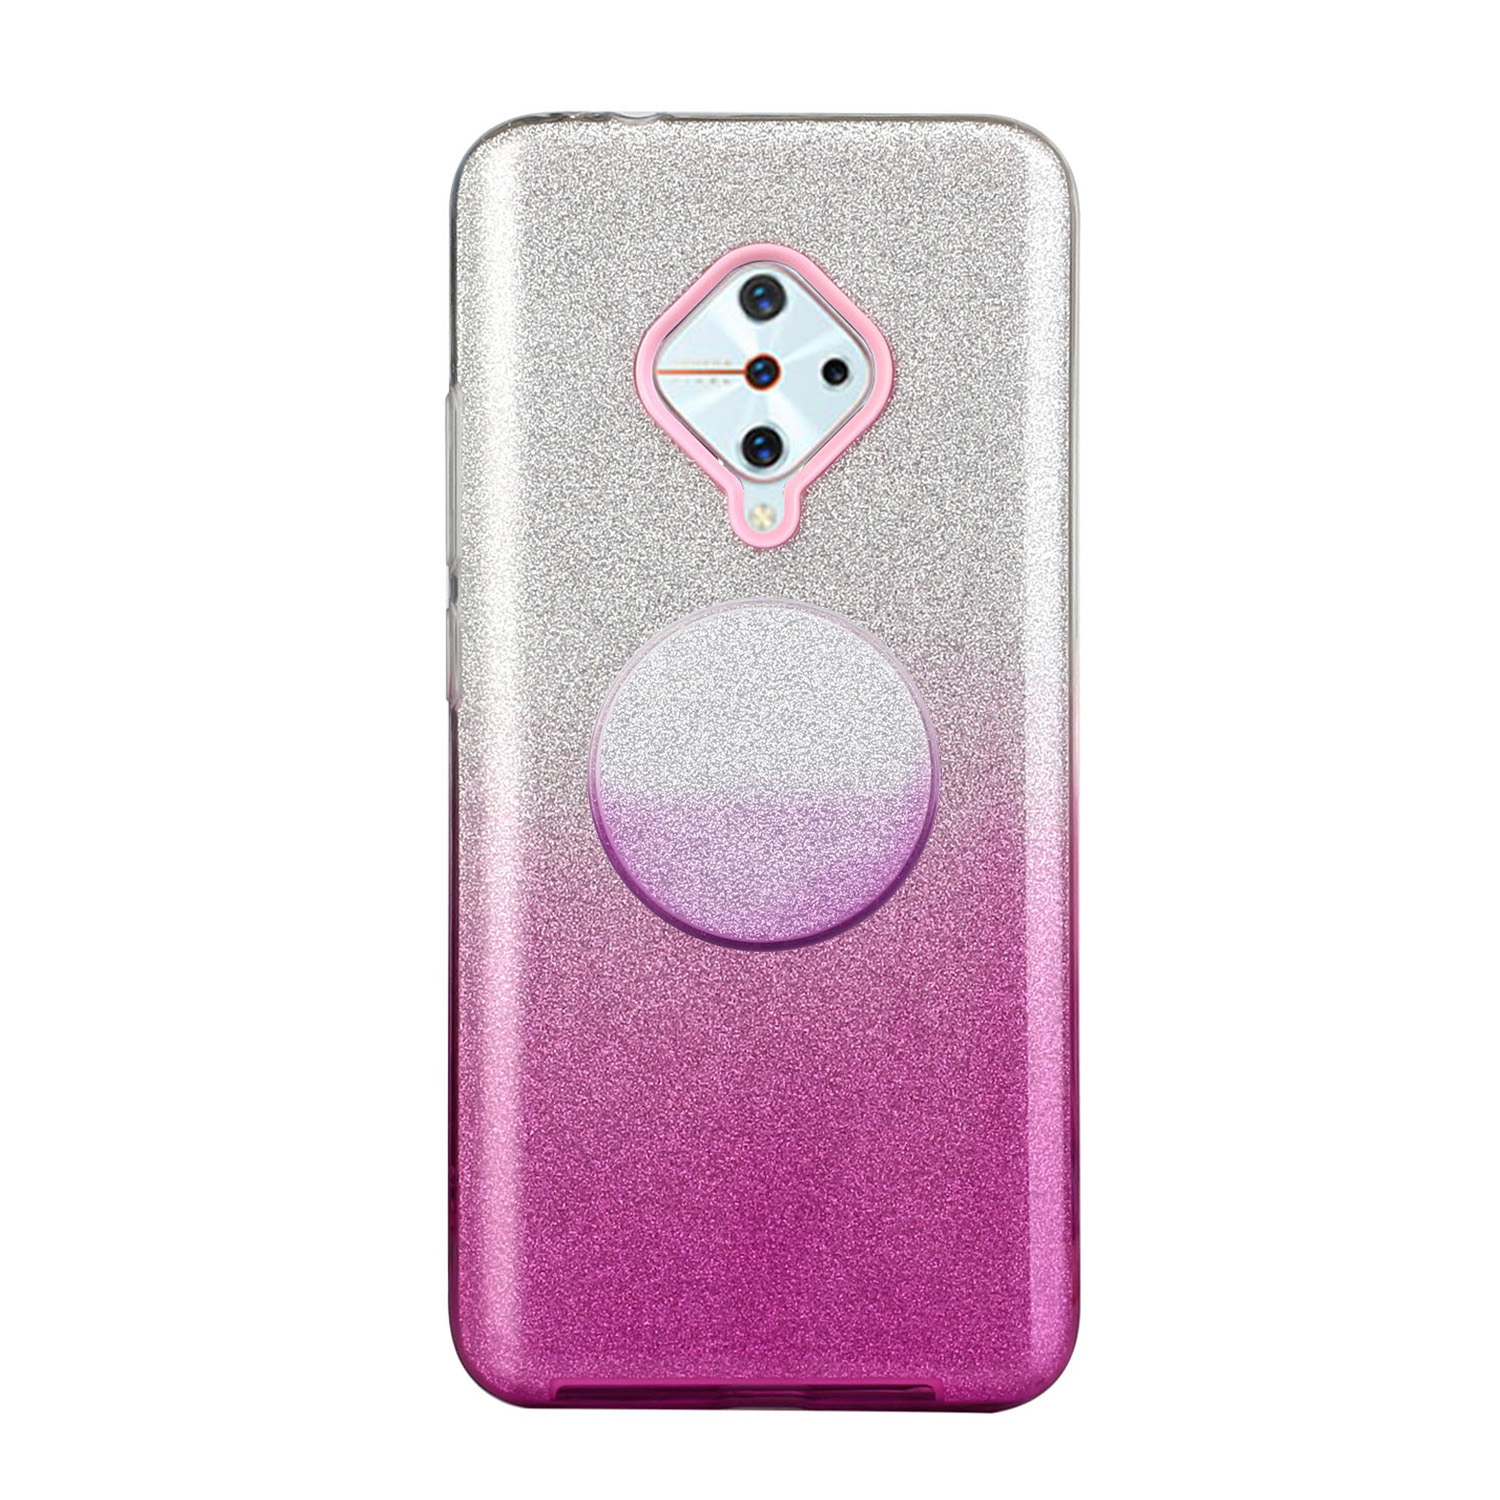 For VIVO Y91/Y93/Y95 with hole/V17/S1 Pro/Y95 Phone Case Gradient Color Glitter Powder Phone Cover with Airbag Bracket purple